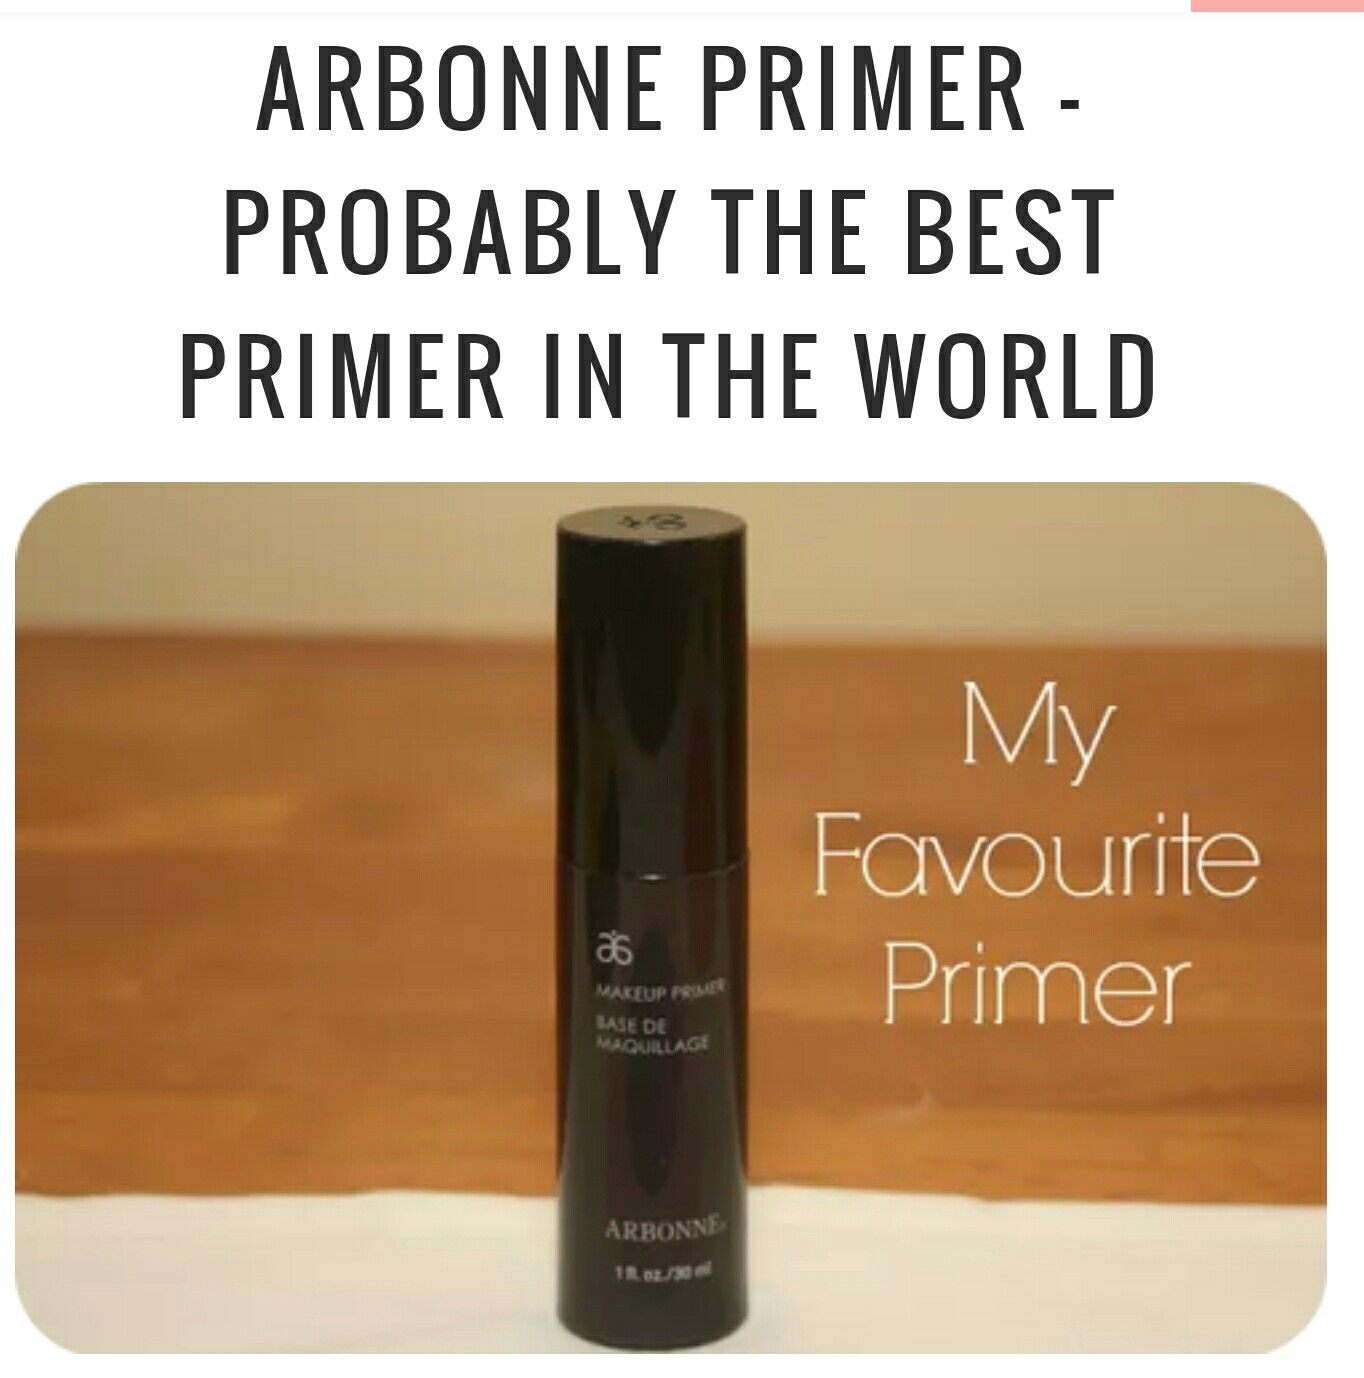 I love this primer and Makeup Monster does too. With out